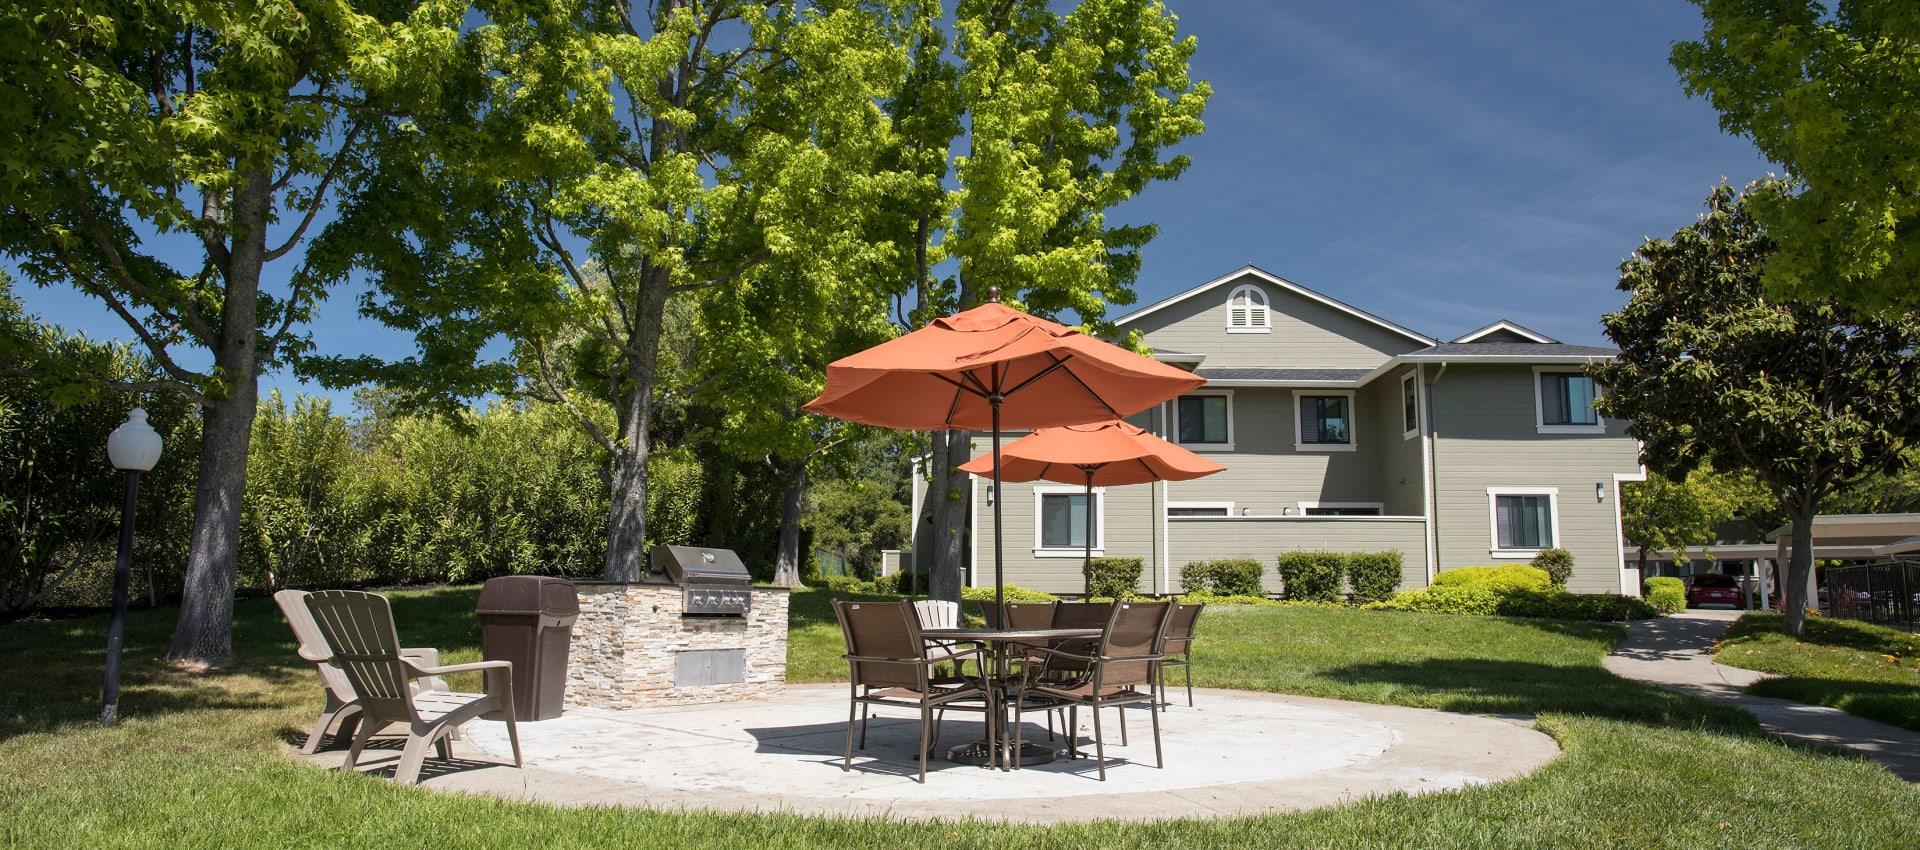 Community area at Ridgecrest Apartment Homes in Martinez, California